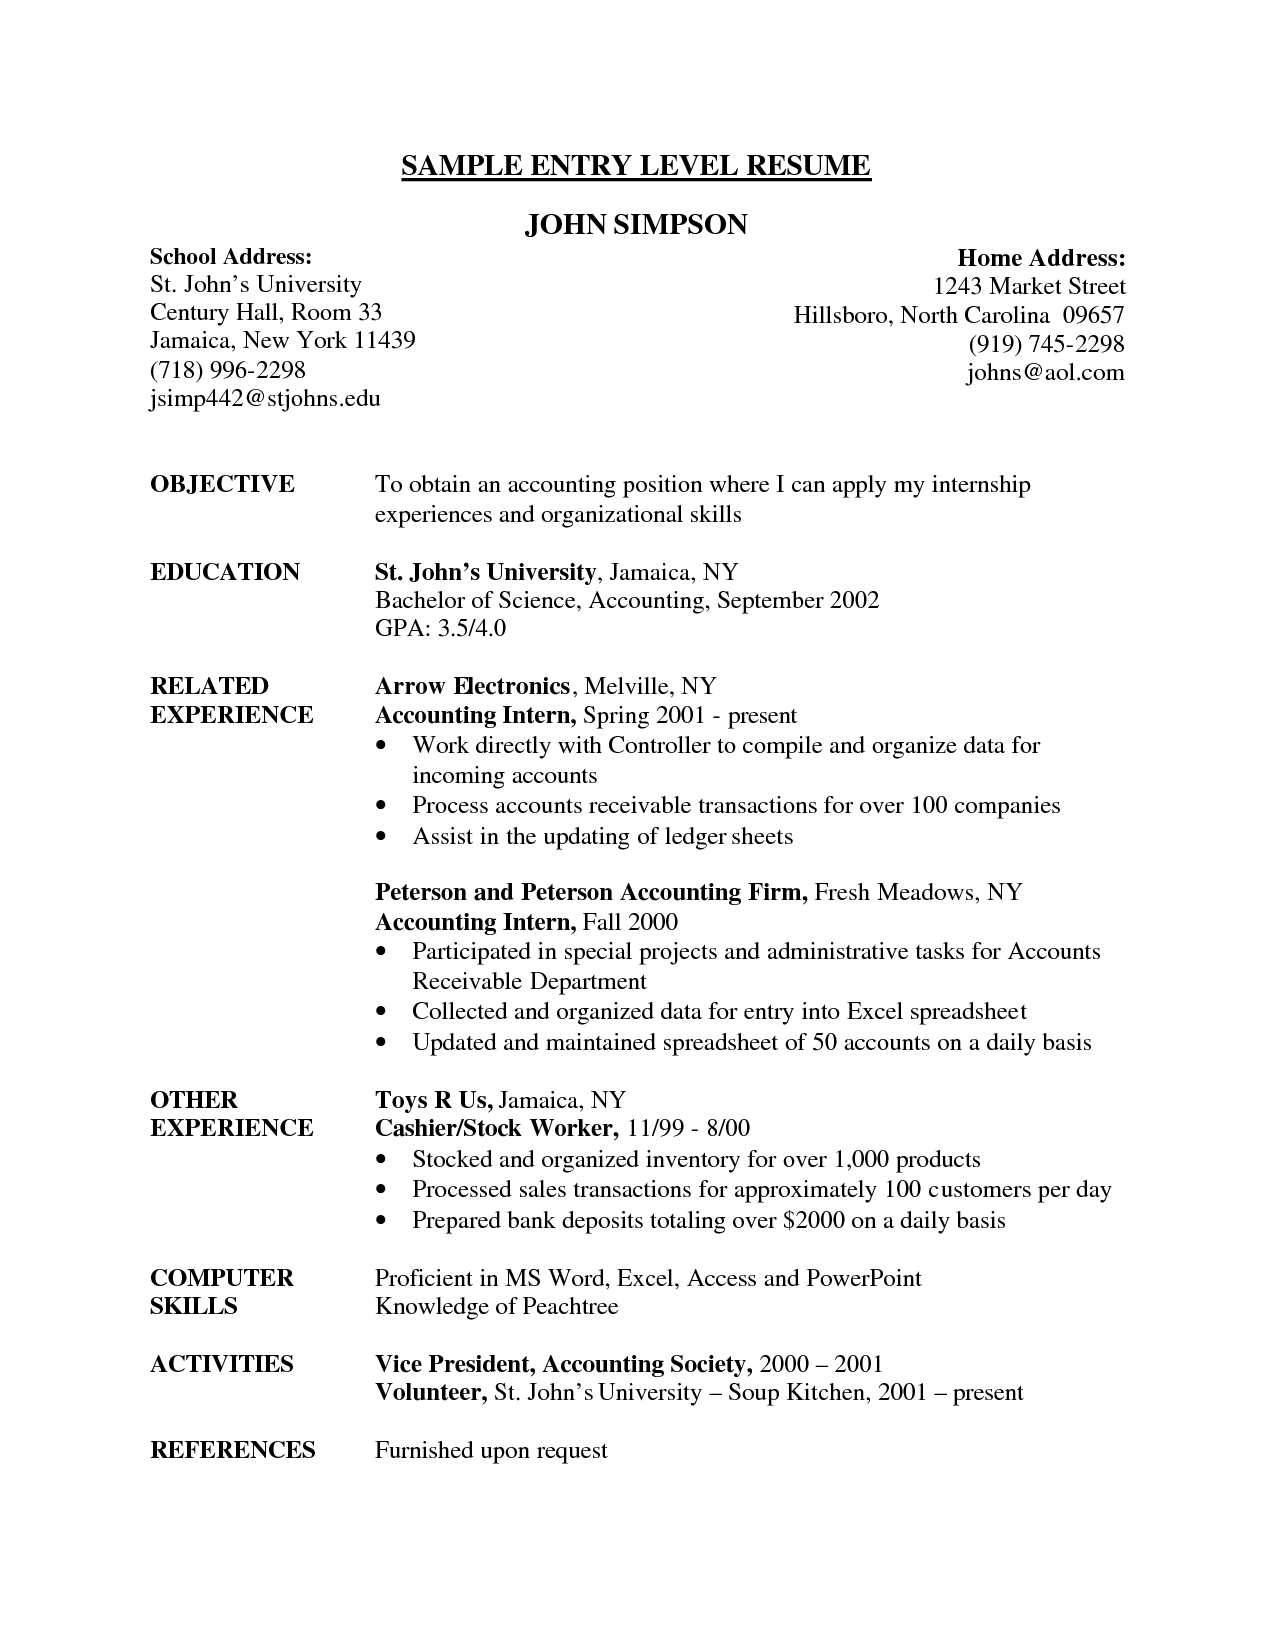 General Objectives For Resumes Sample Objective For Resume Entry Level Format Resumes Example